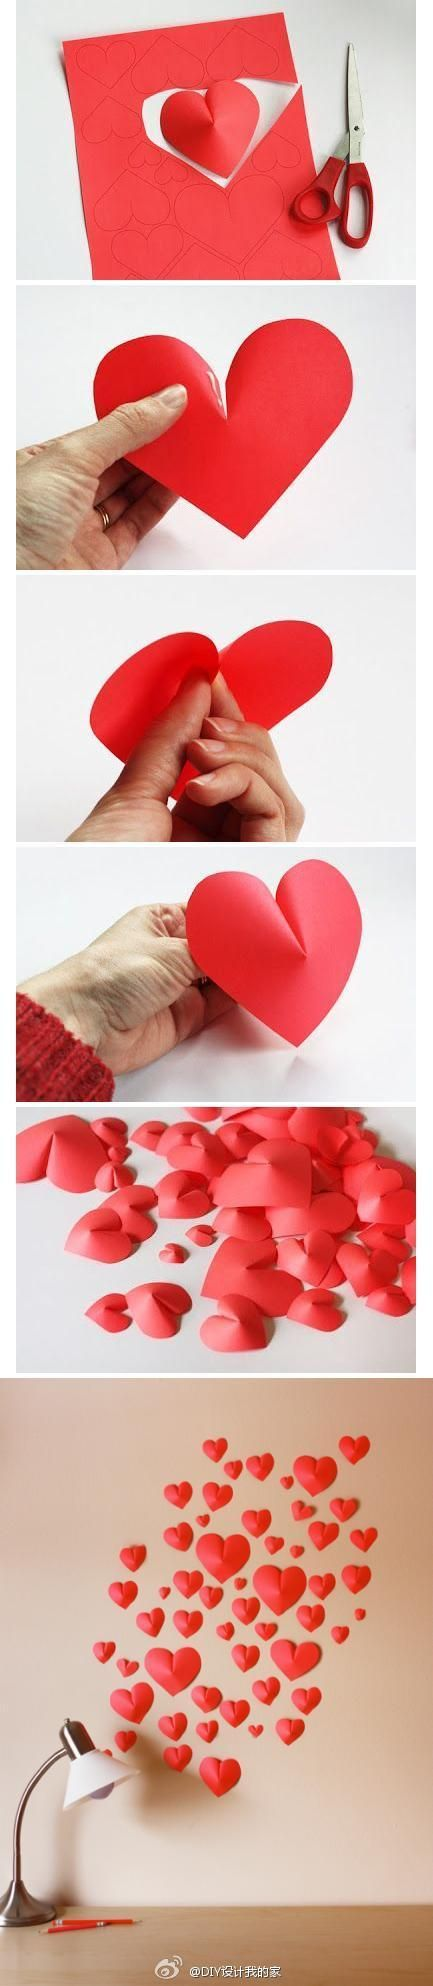 Make a 3D Paper Heart For Decoration...